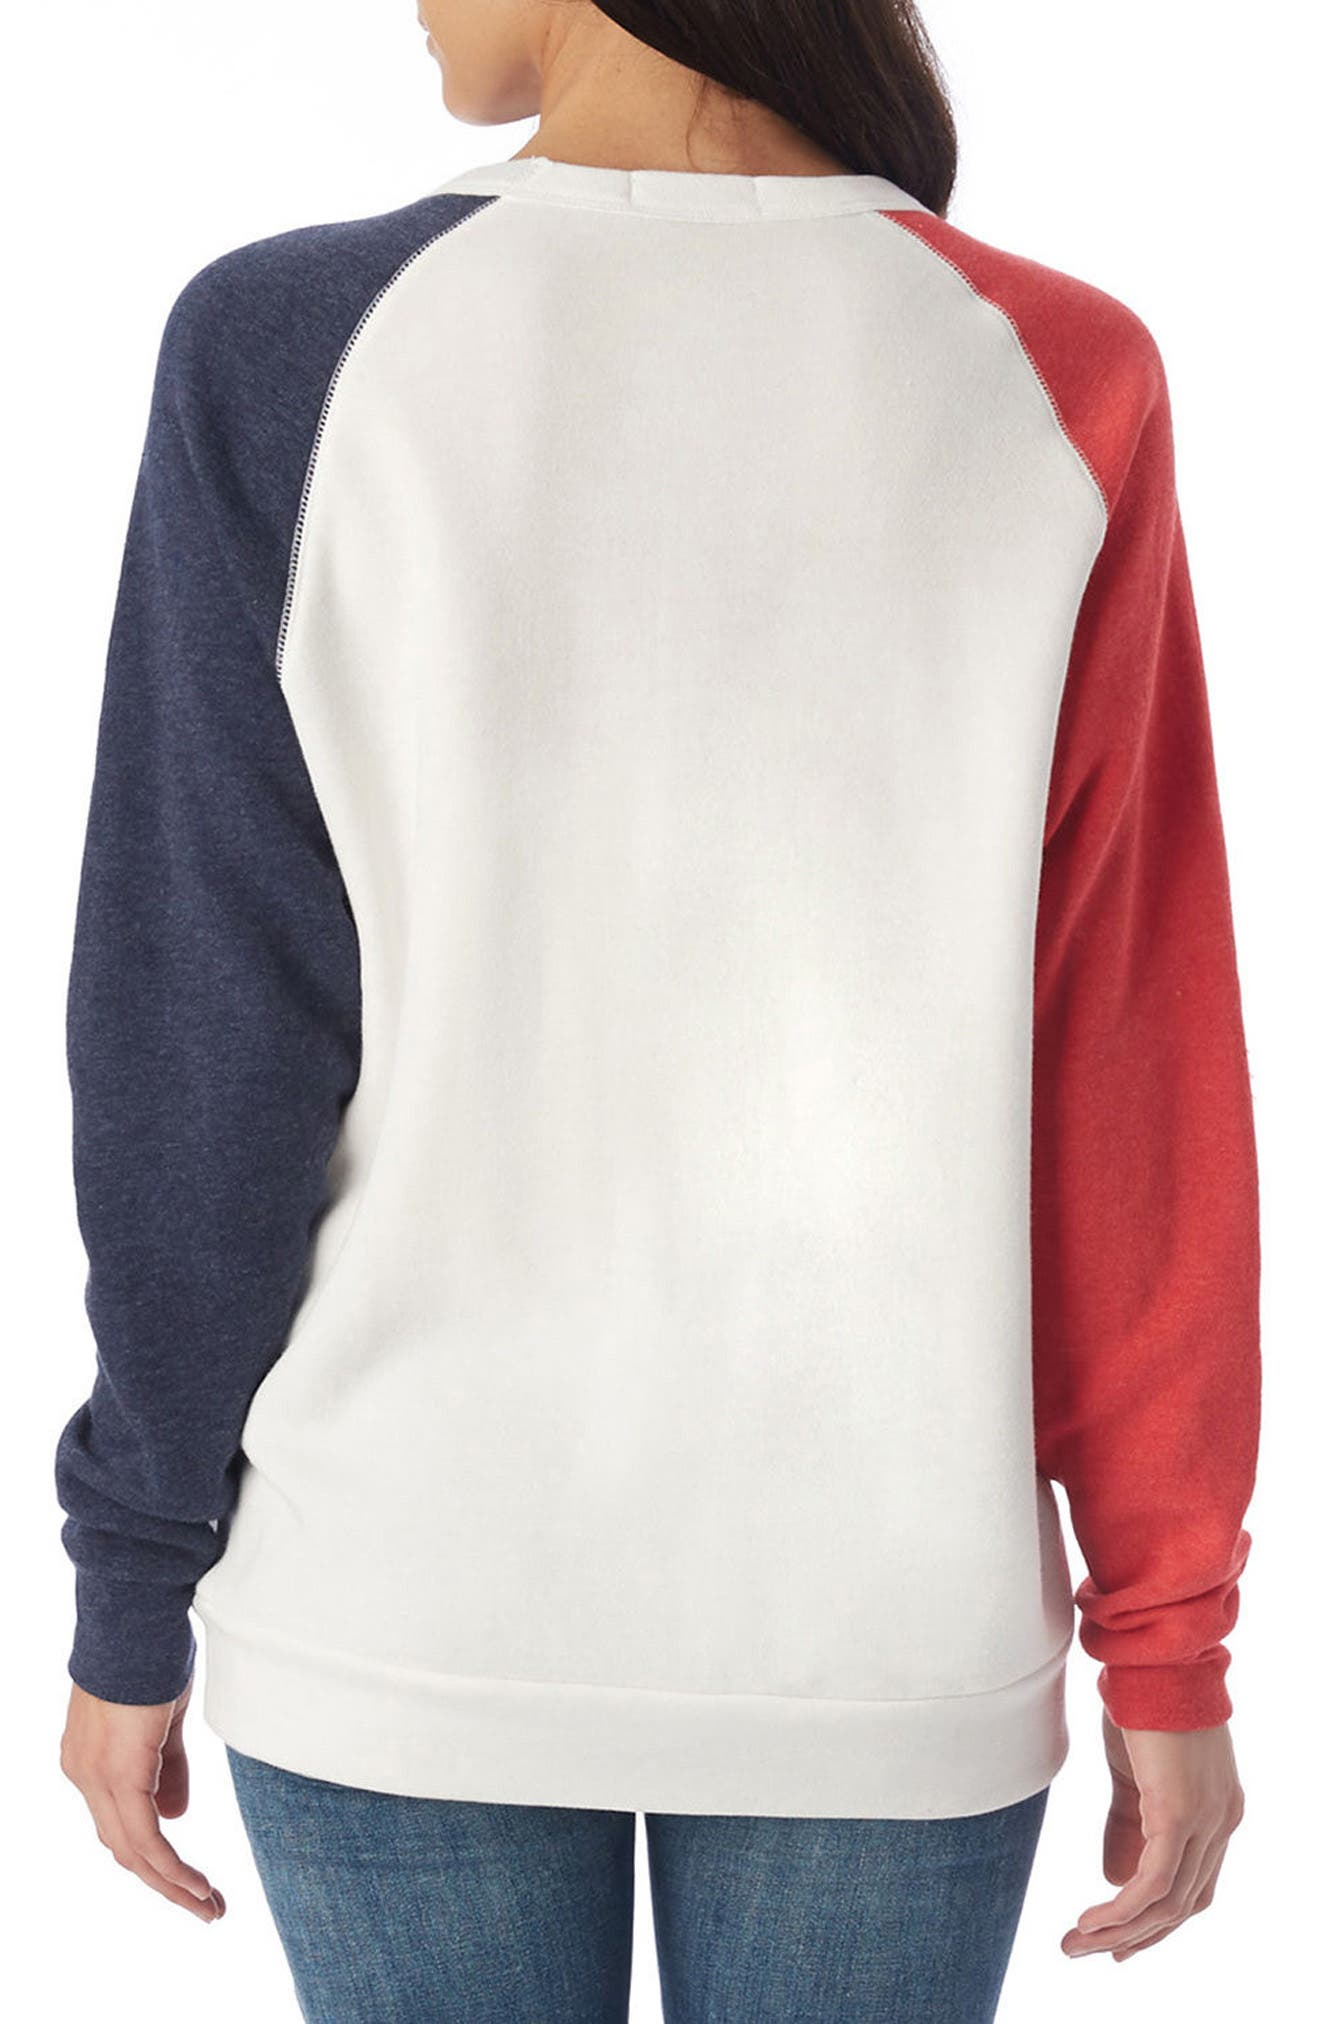 USA Champ Sweatshirt,                             Alternate thumbnail 2, color,                             905